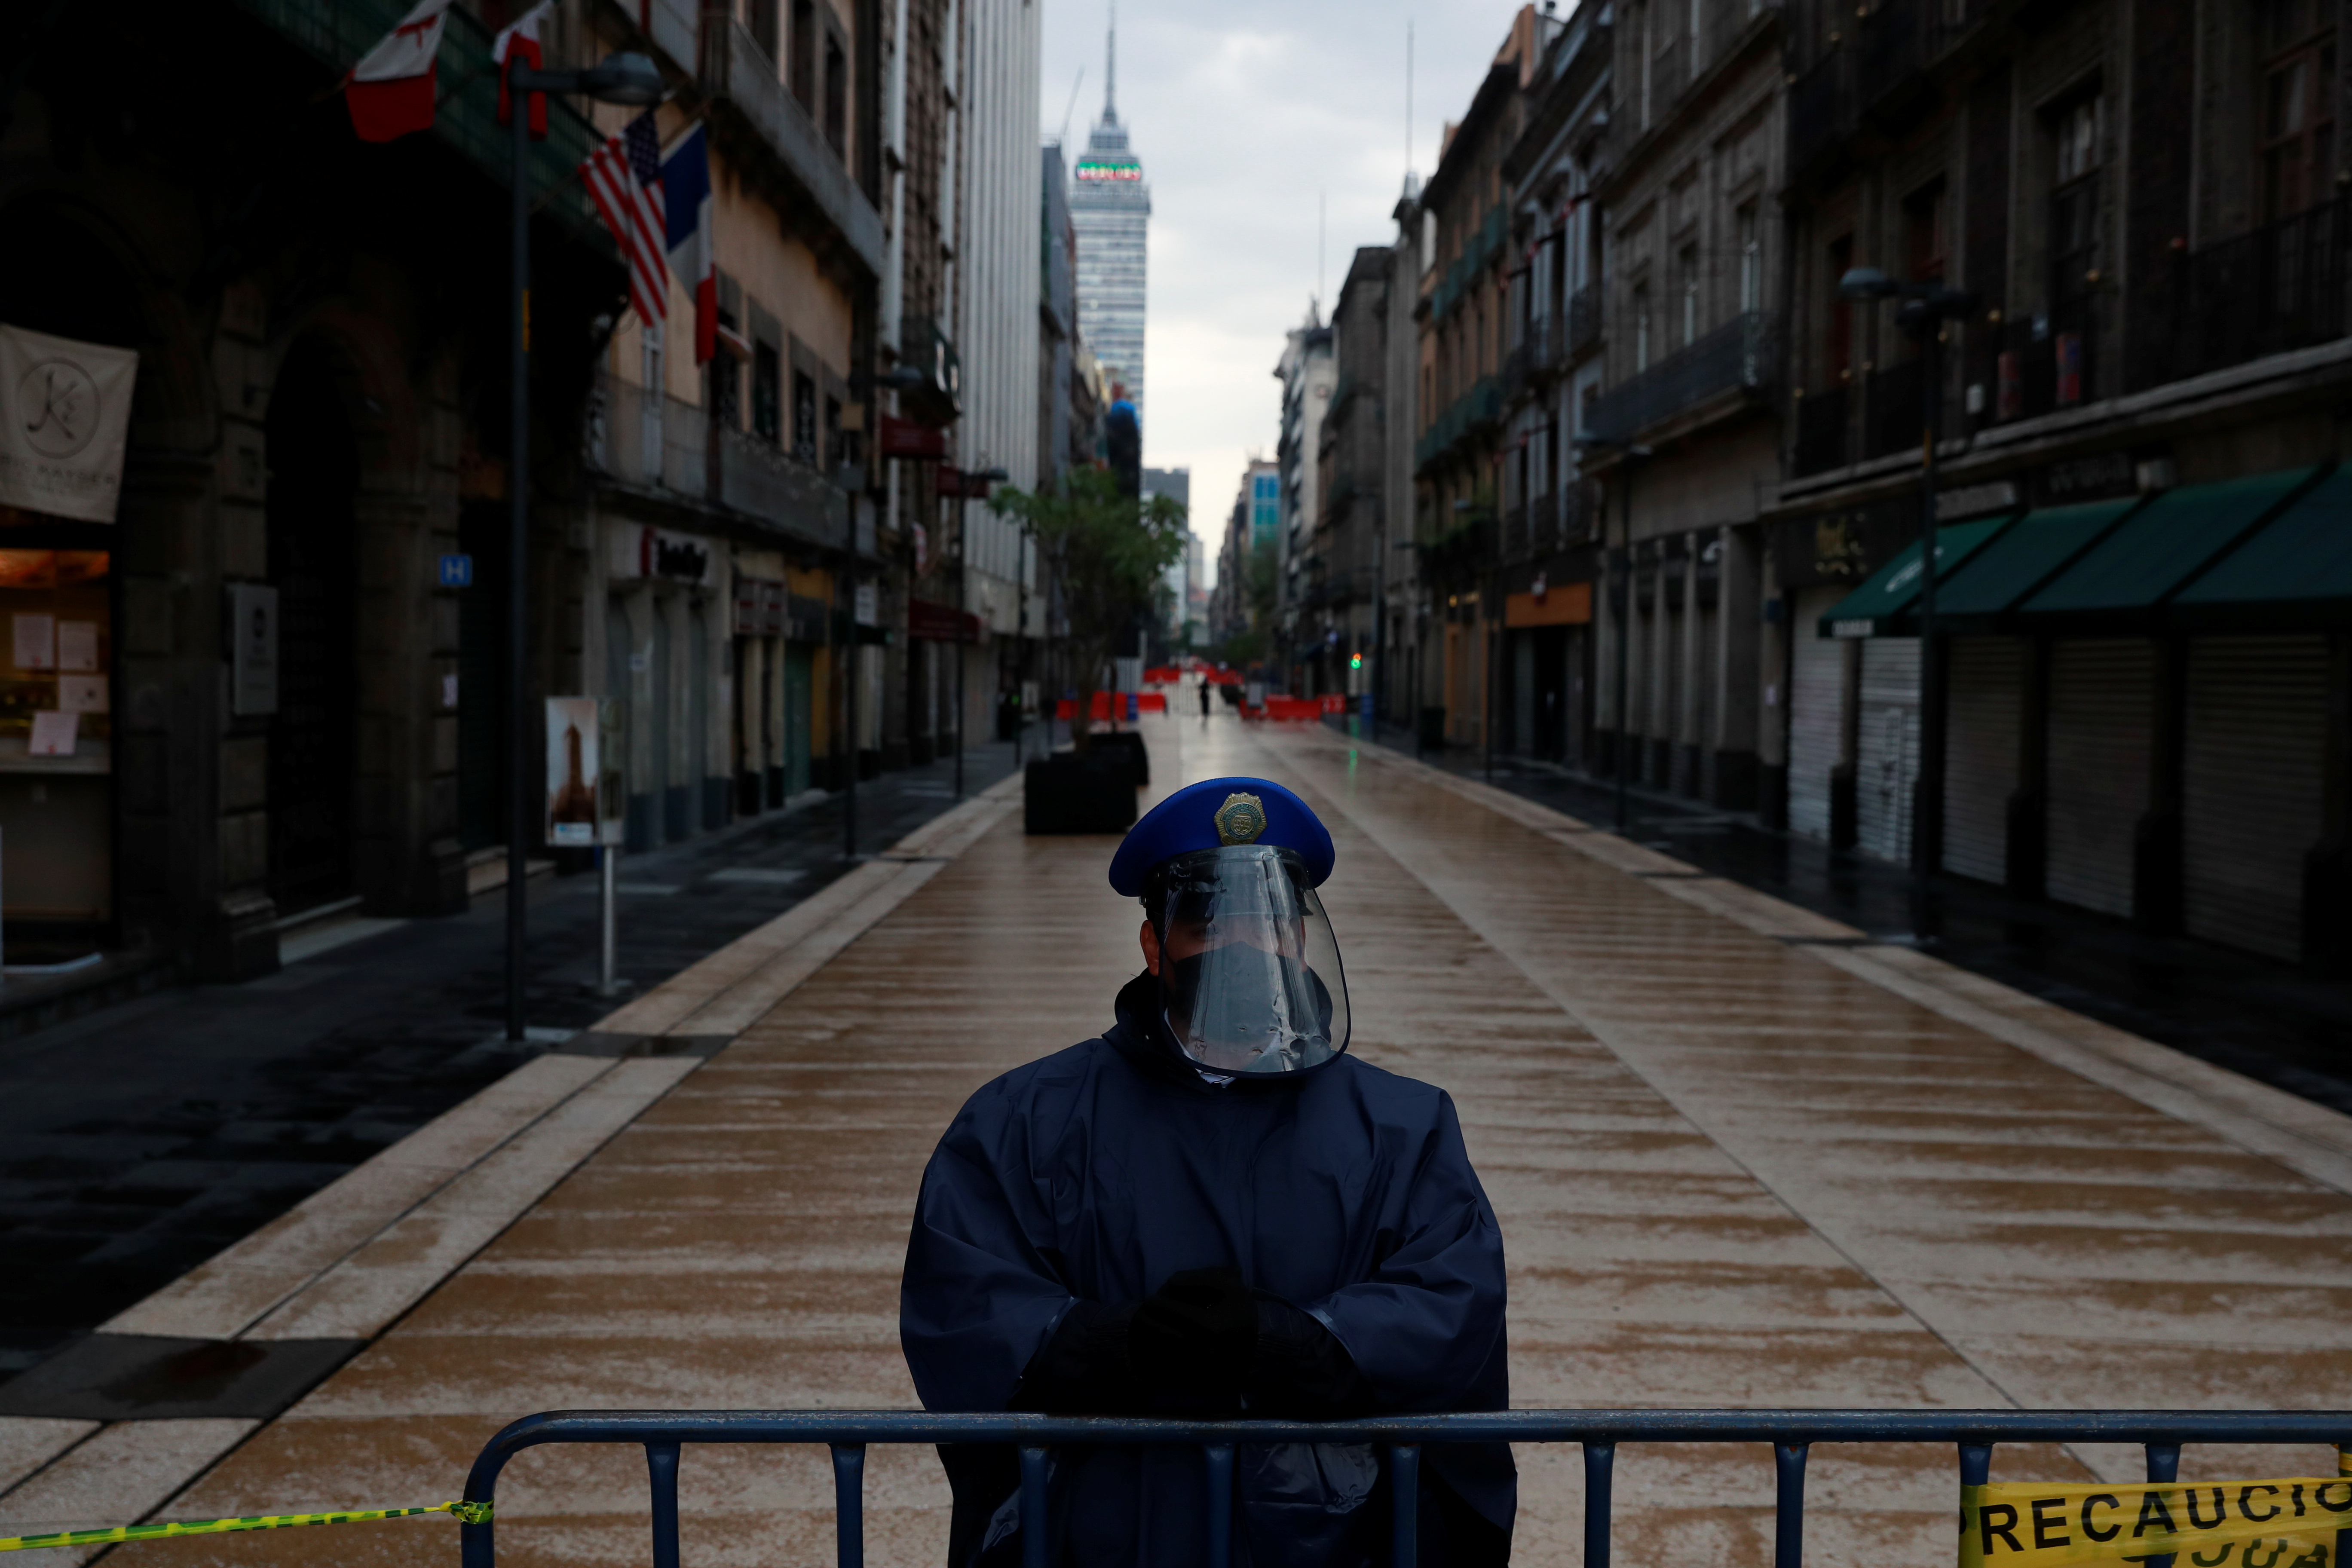 A police officer guards a closed road at the city center after amenities and businesses were shut for the second time this weekend due to overcrowding over the last few days, as the coronavirus disease (COVID-19) outbreak continues, in Mexico City, Mexico July 4, 2020. REUTERS/Carlos Jasso